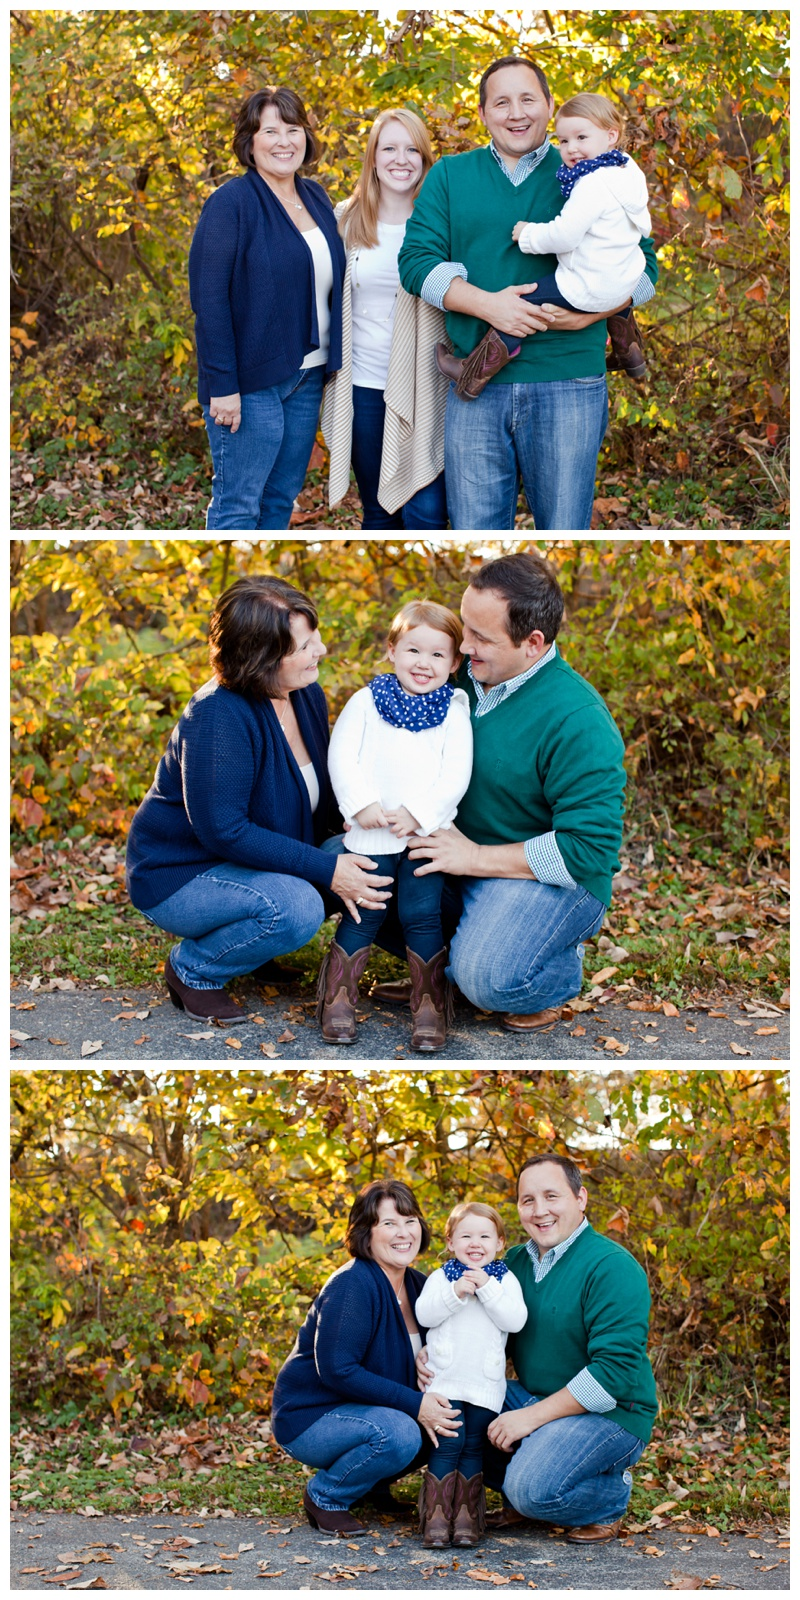 The Hill and Hufham Families